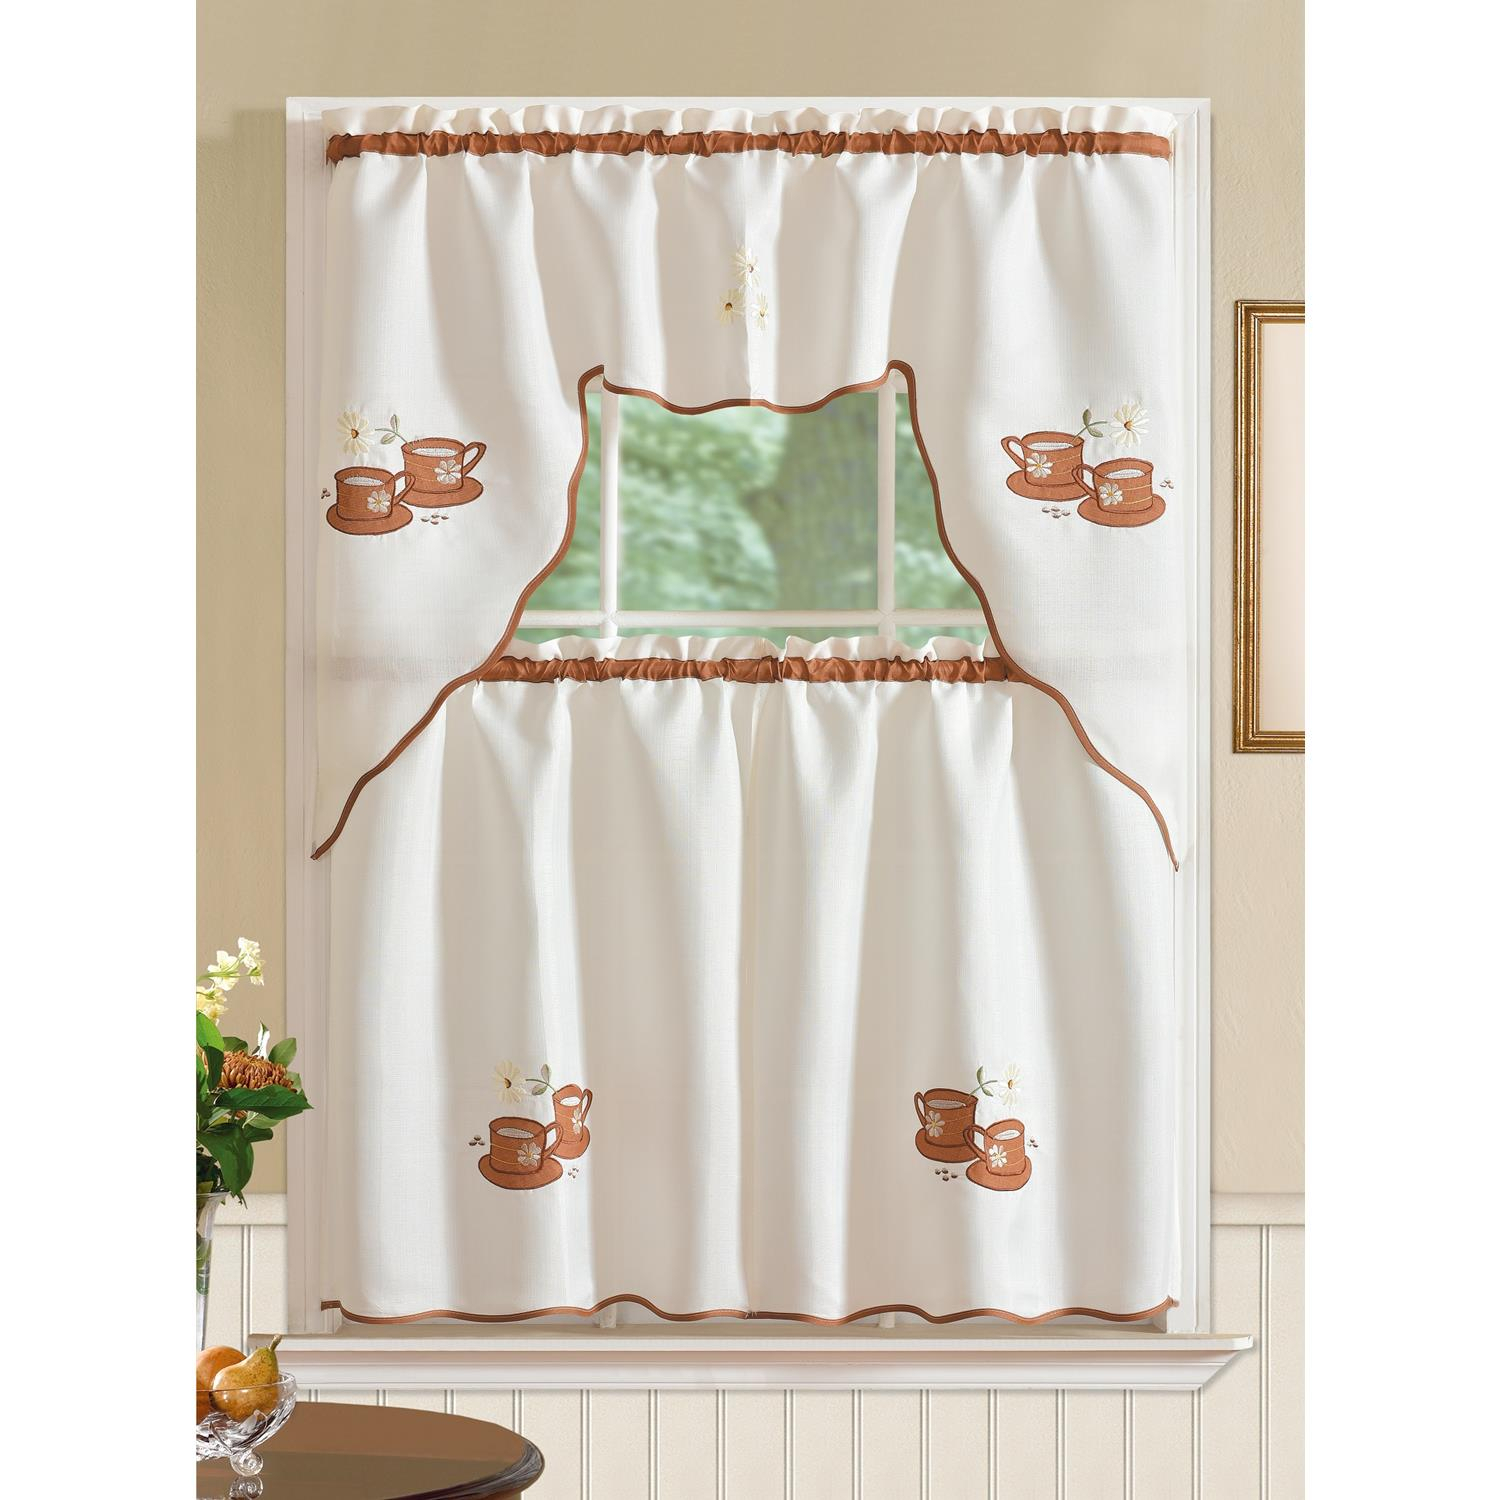 Details About Imperial Coffee Jacquard Kitchen Curtain Set Pertaining To Coffee Embroidered Kitchen Curtain Tier Sets (View 6 of 20)